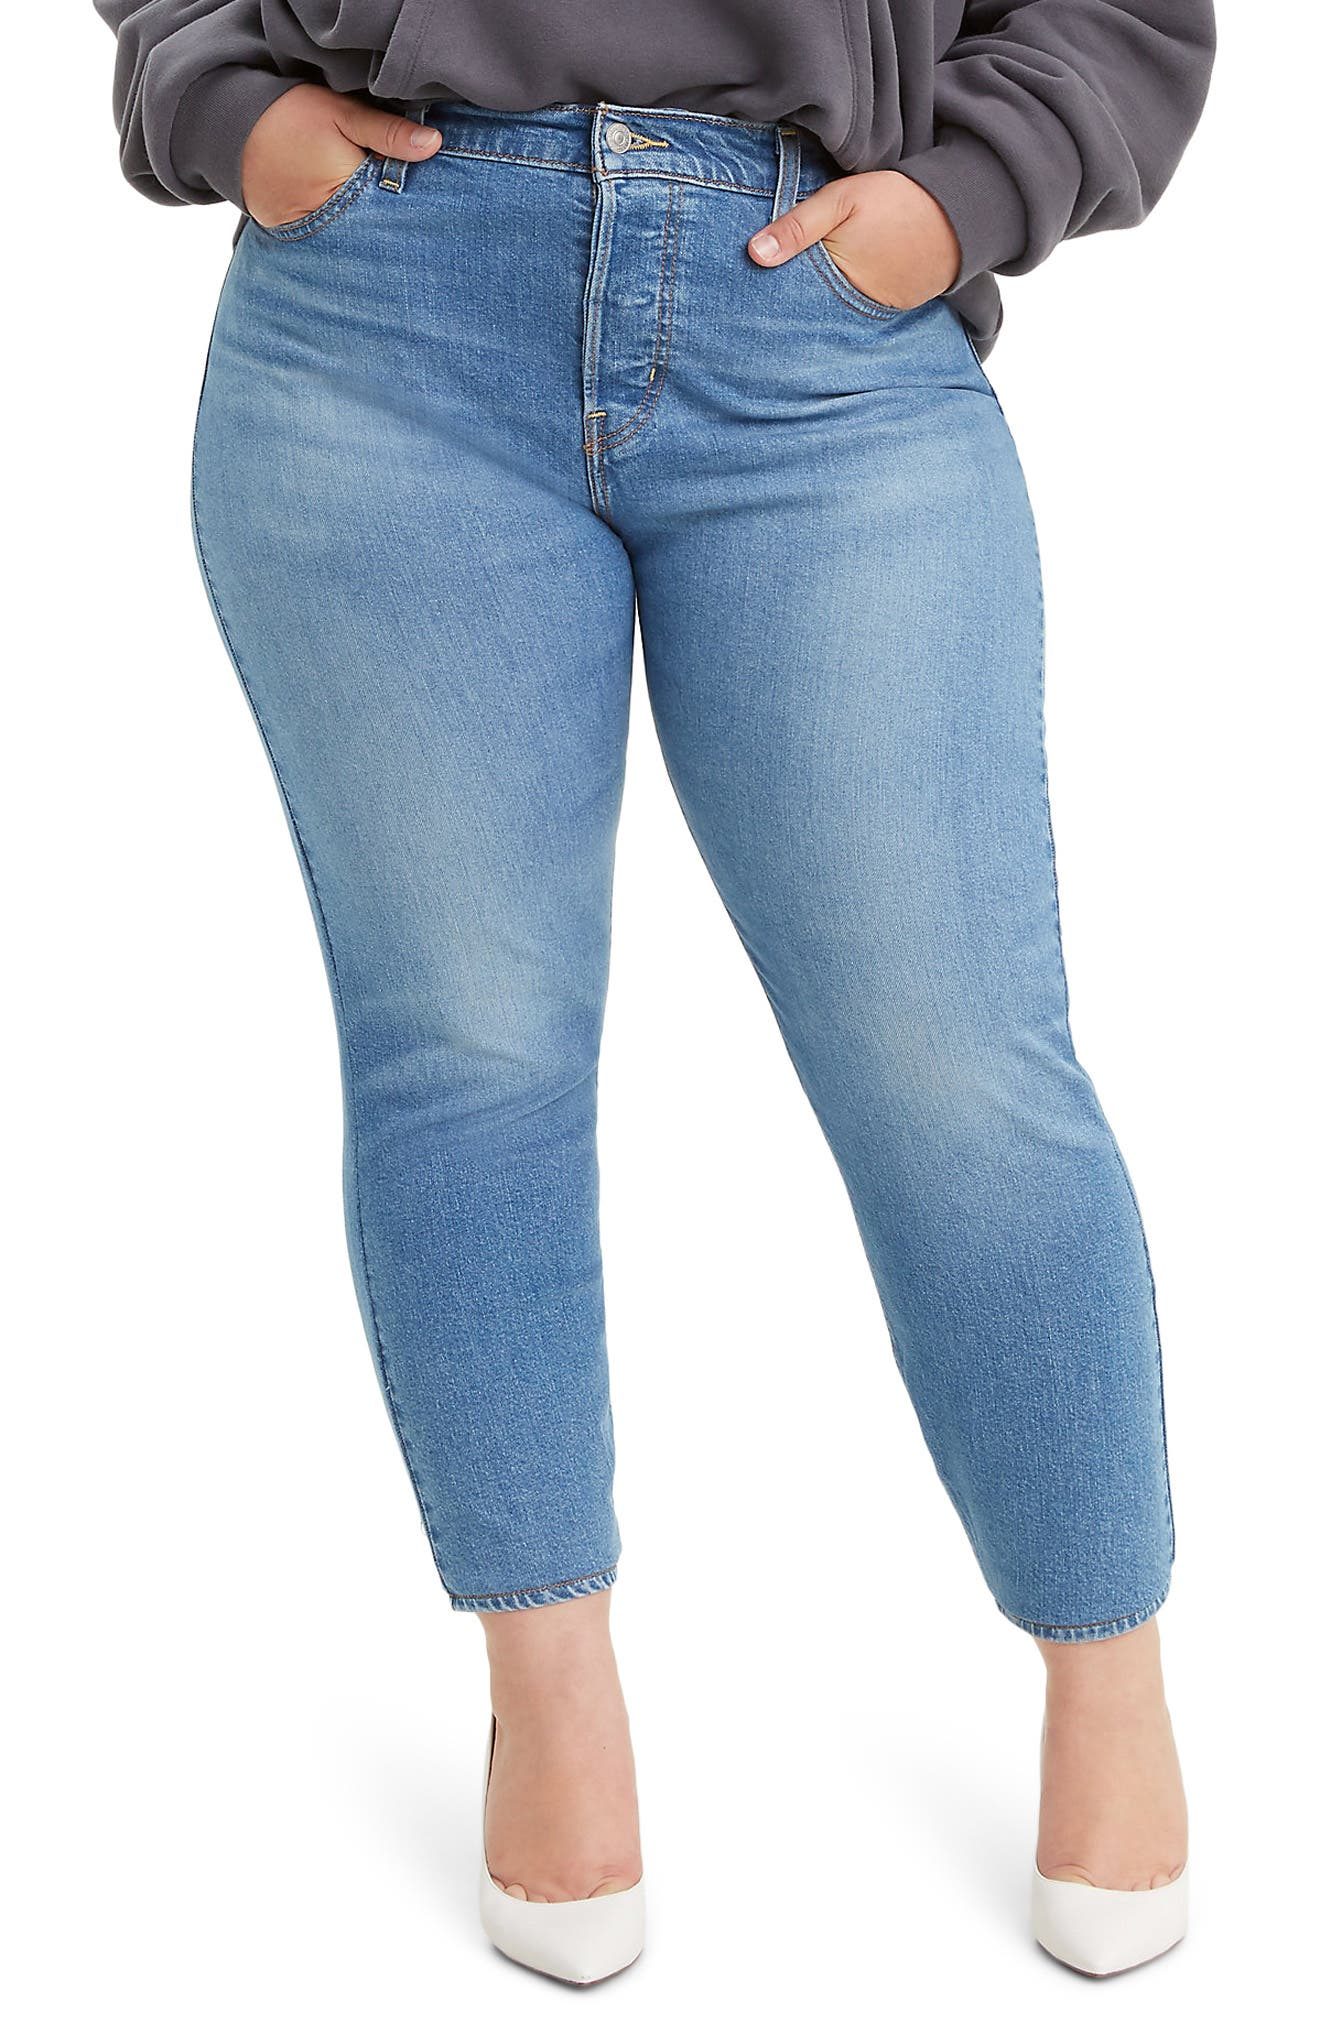 Inspired by vintage Levi\\\'s, these high-waist stretch-denim jeans hug the waist and hips to showcase your curves to greatest effect. Style Name: Levi\\\'s Wedgie High Waist Ankle Skinny Jeans (Jive Sound) (Plus Size). Style Number: 5951911. Available in stores.